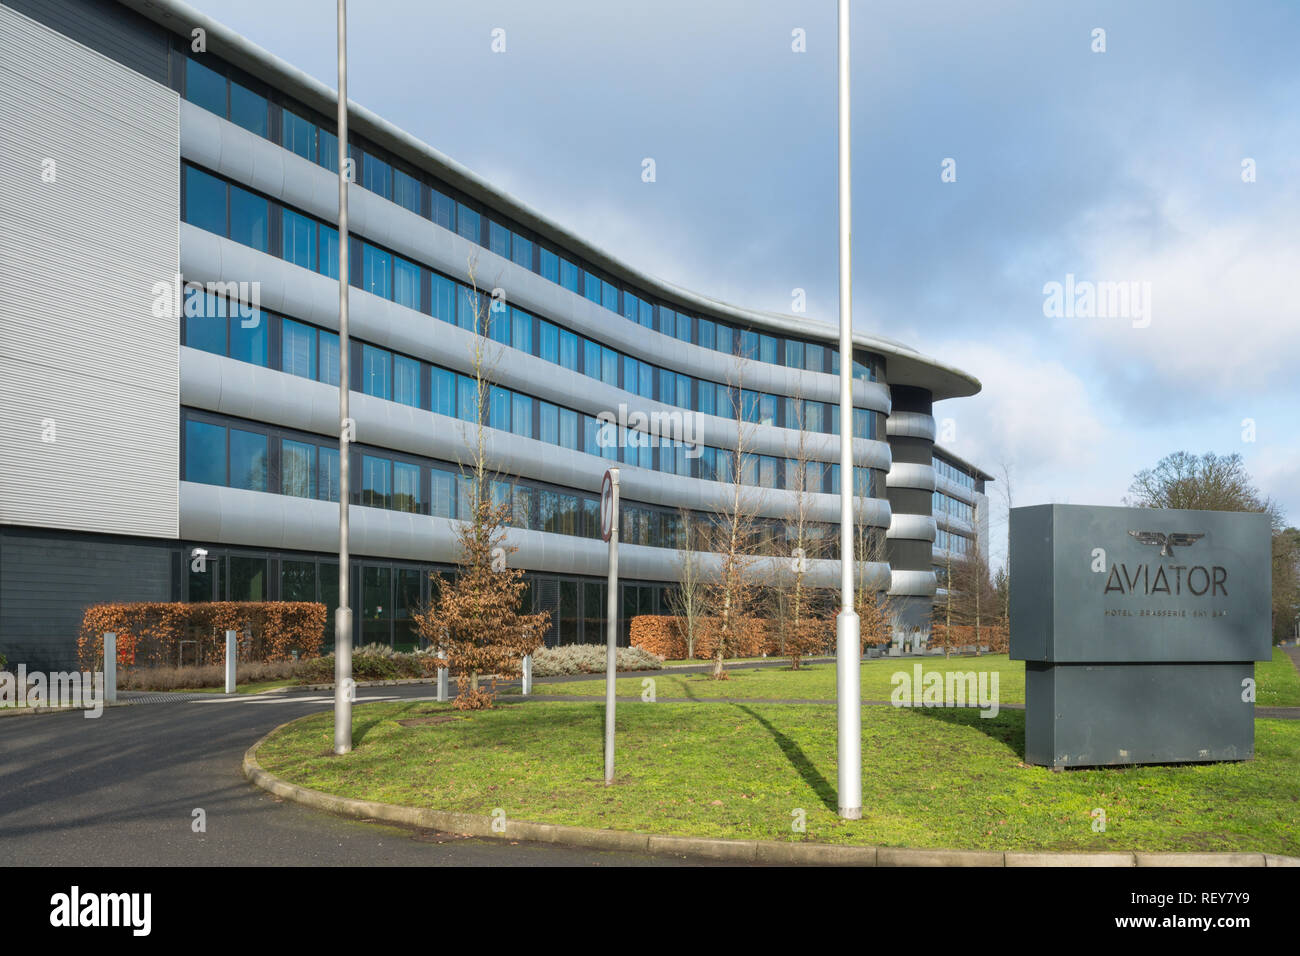 The Aviator Hotel, an upscale hotel, wedding and events venue close to Farnborough Airport, Hampshire, UK - Stock Image